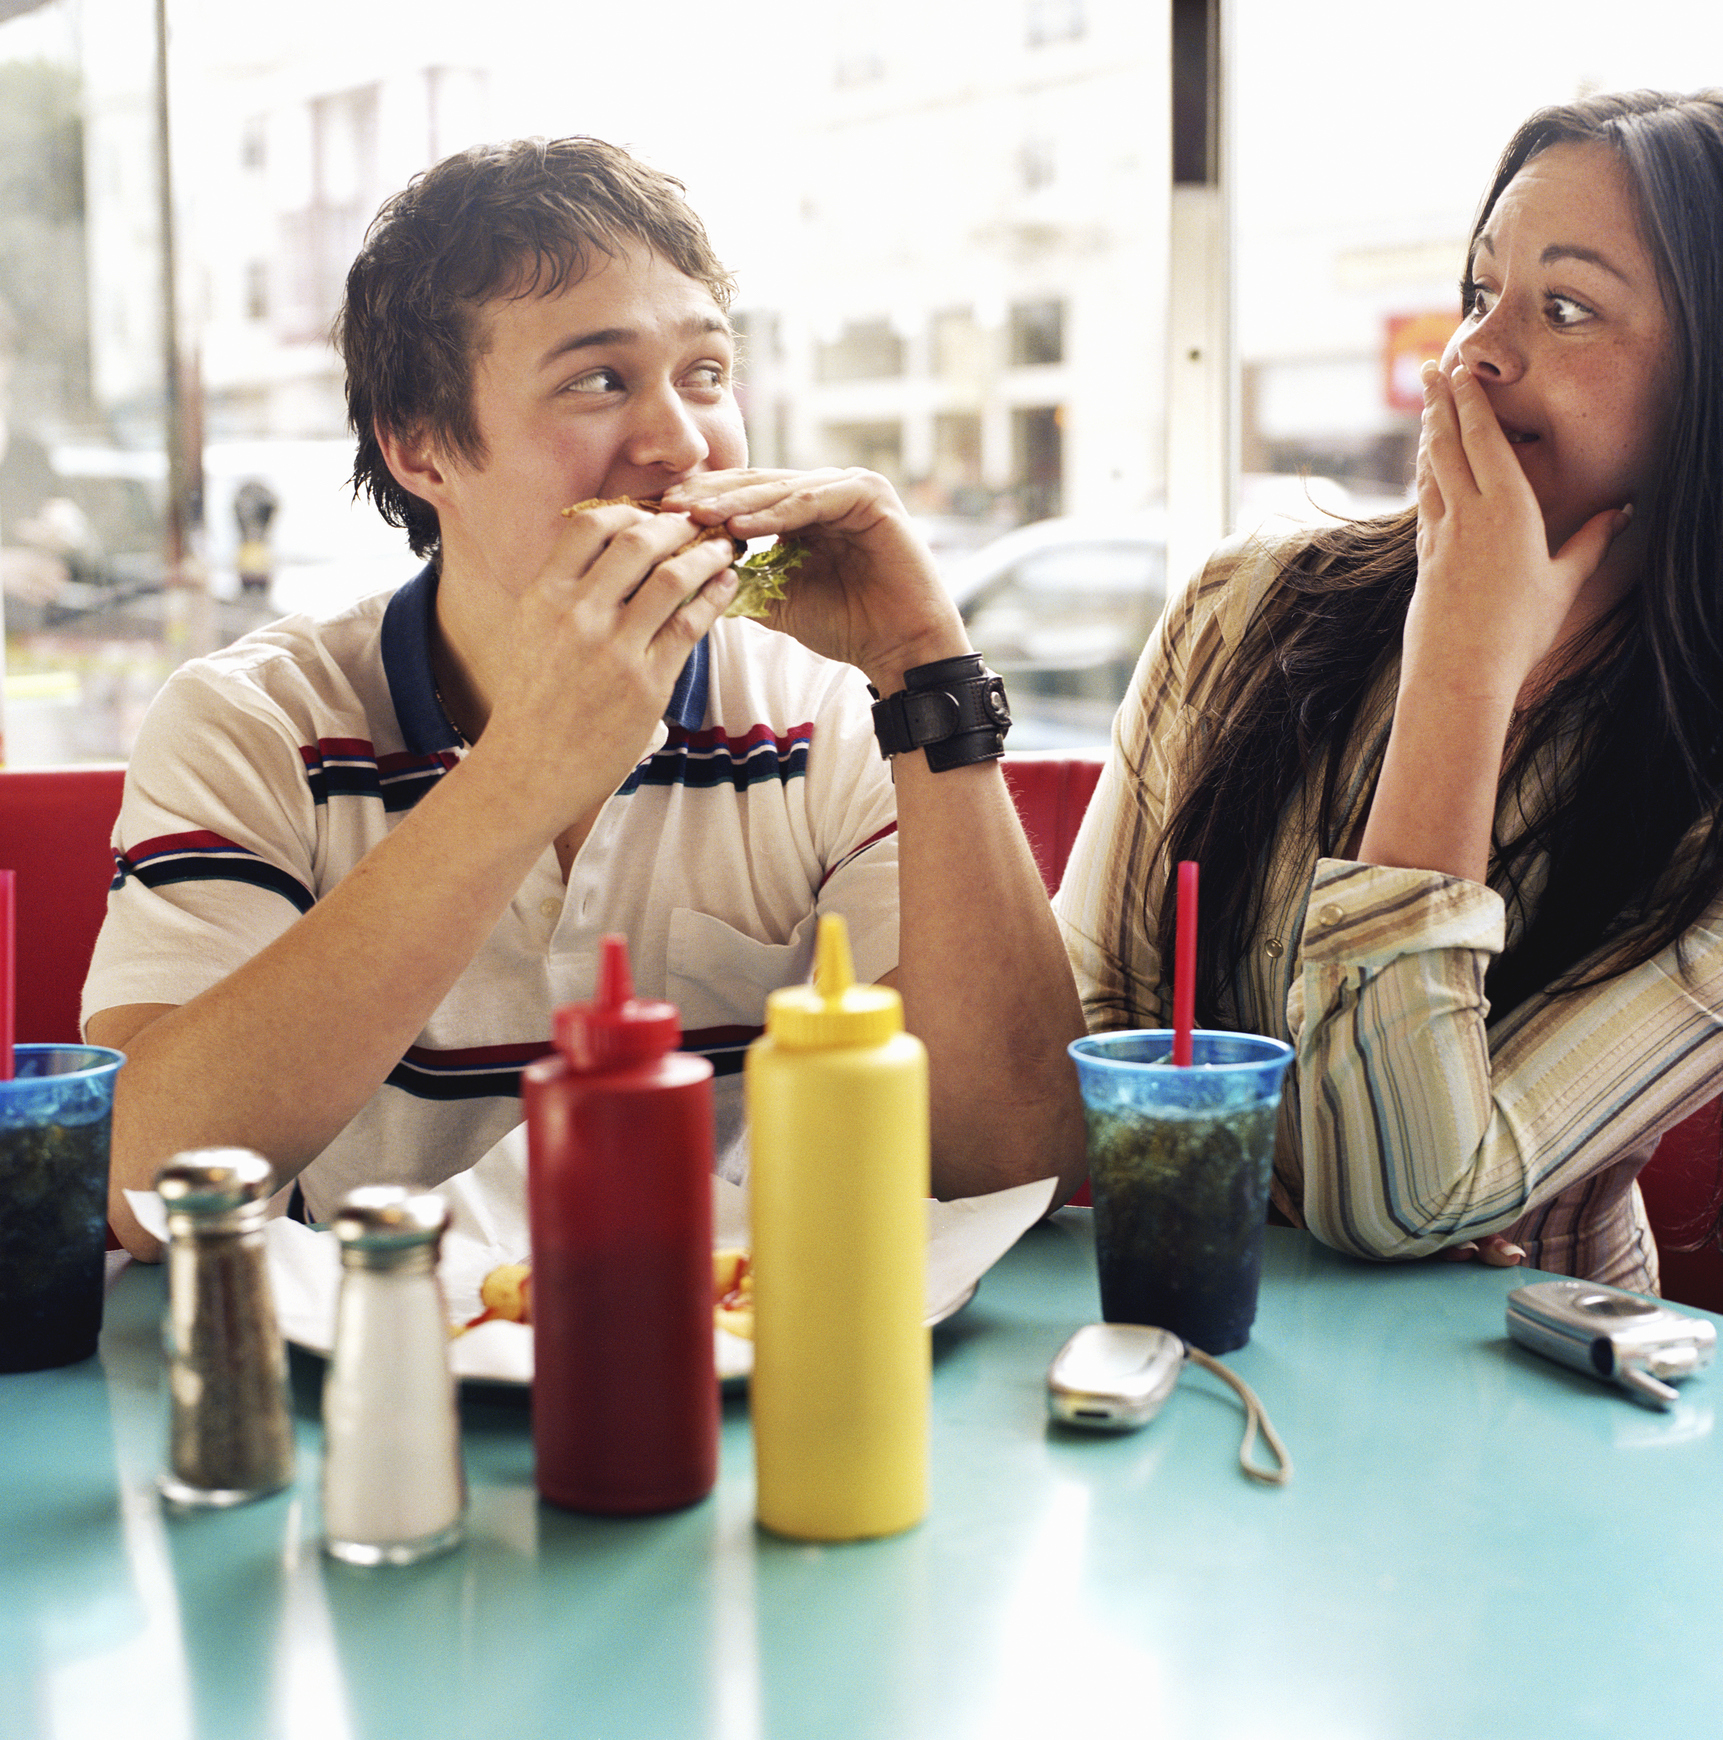 Couple eating burger at diner